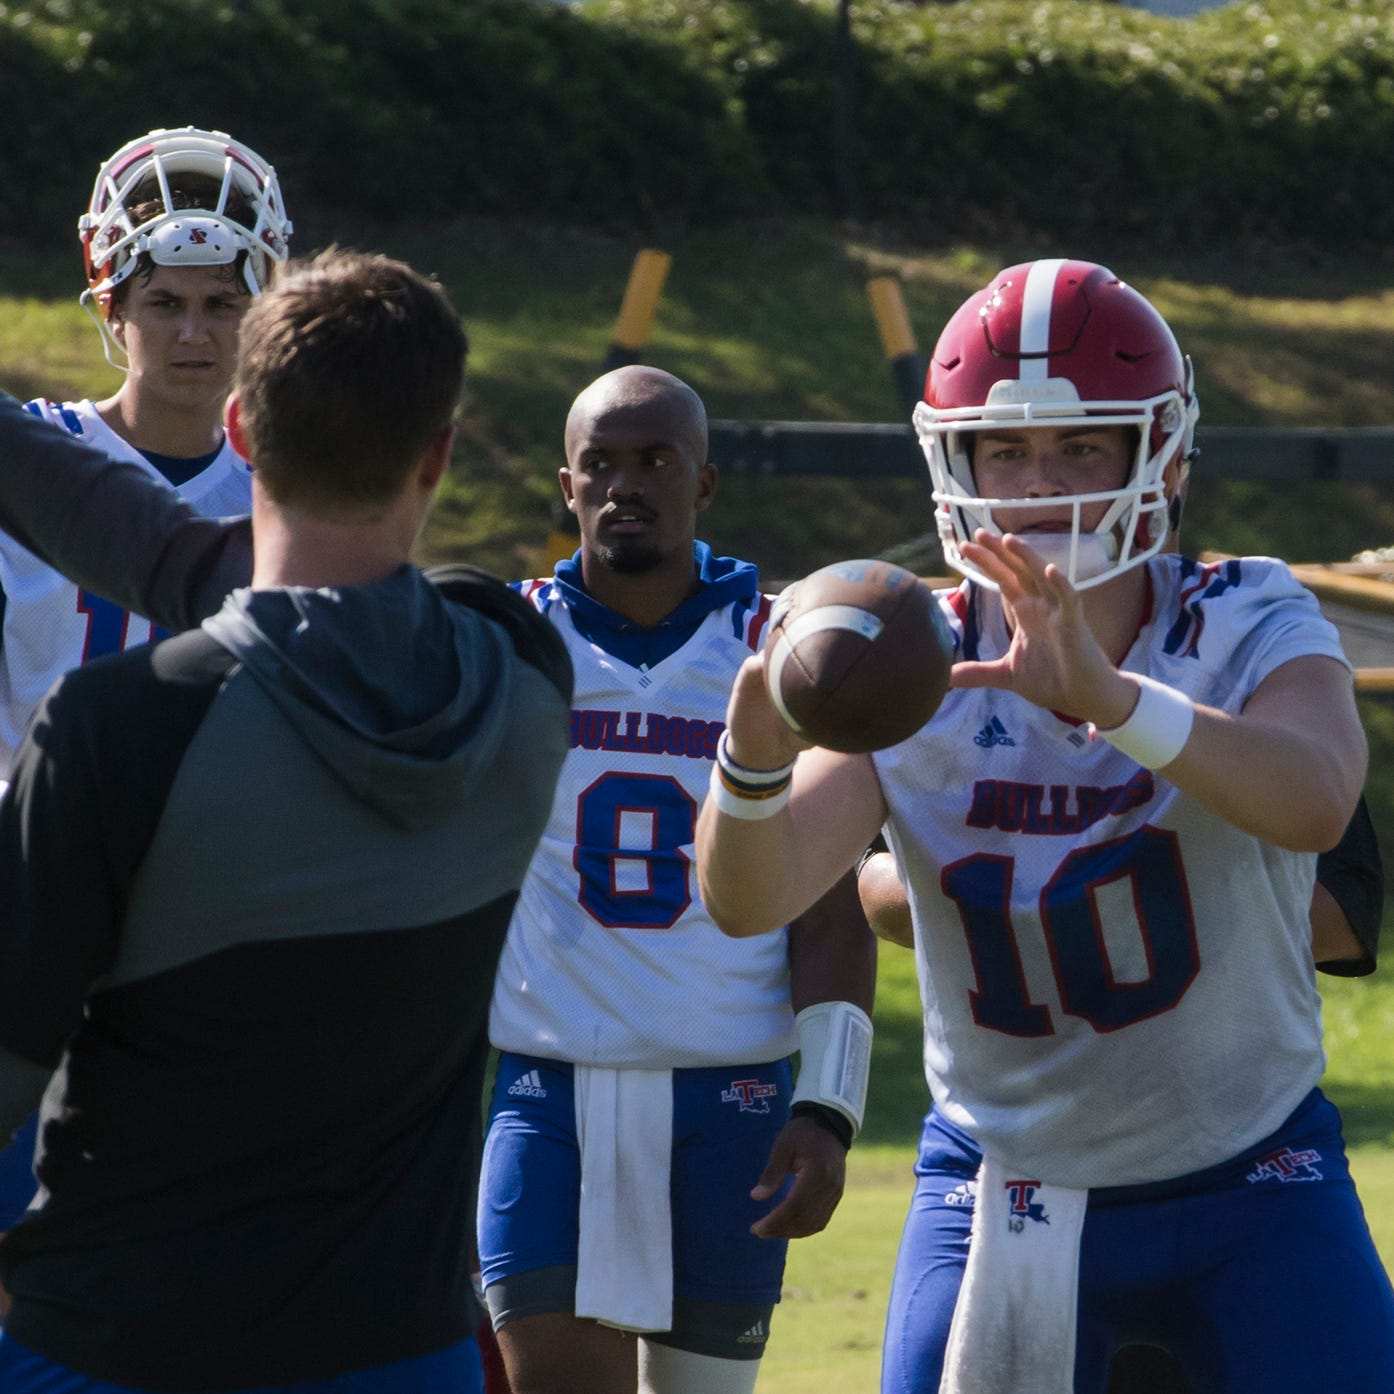 What to watch for in Louisiana Tech's second scrimmage